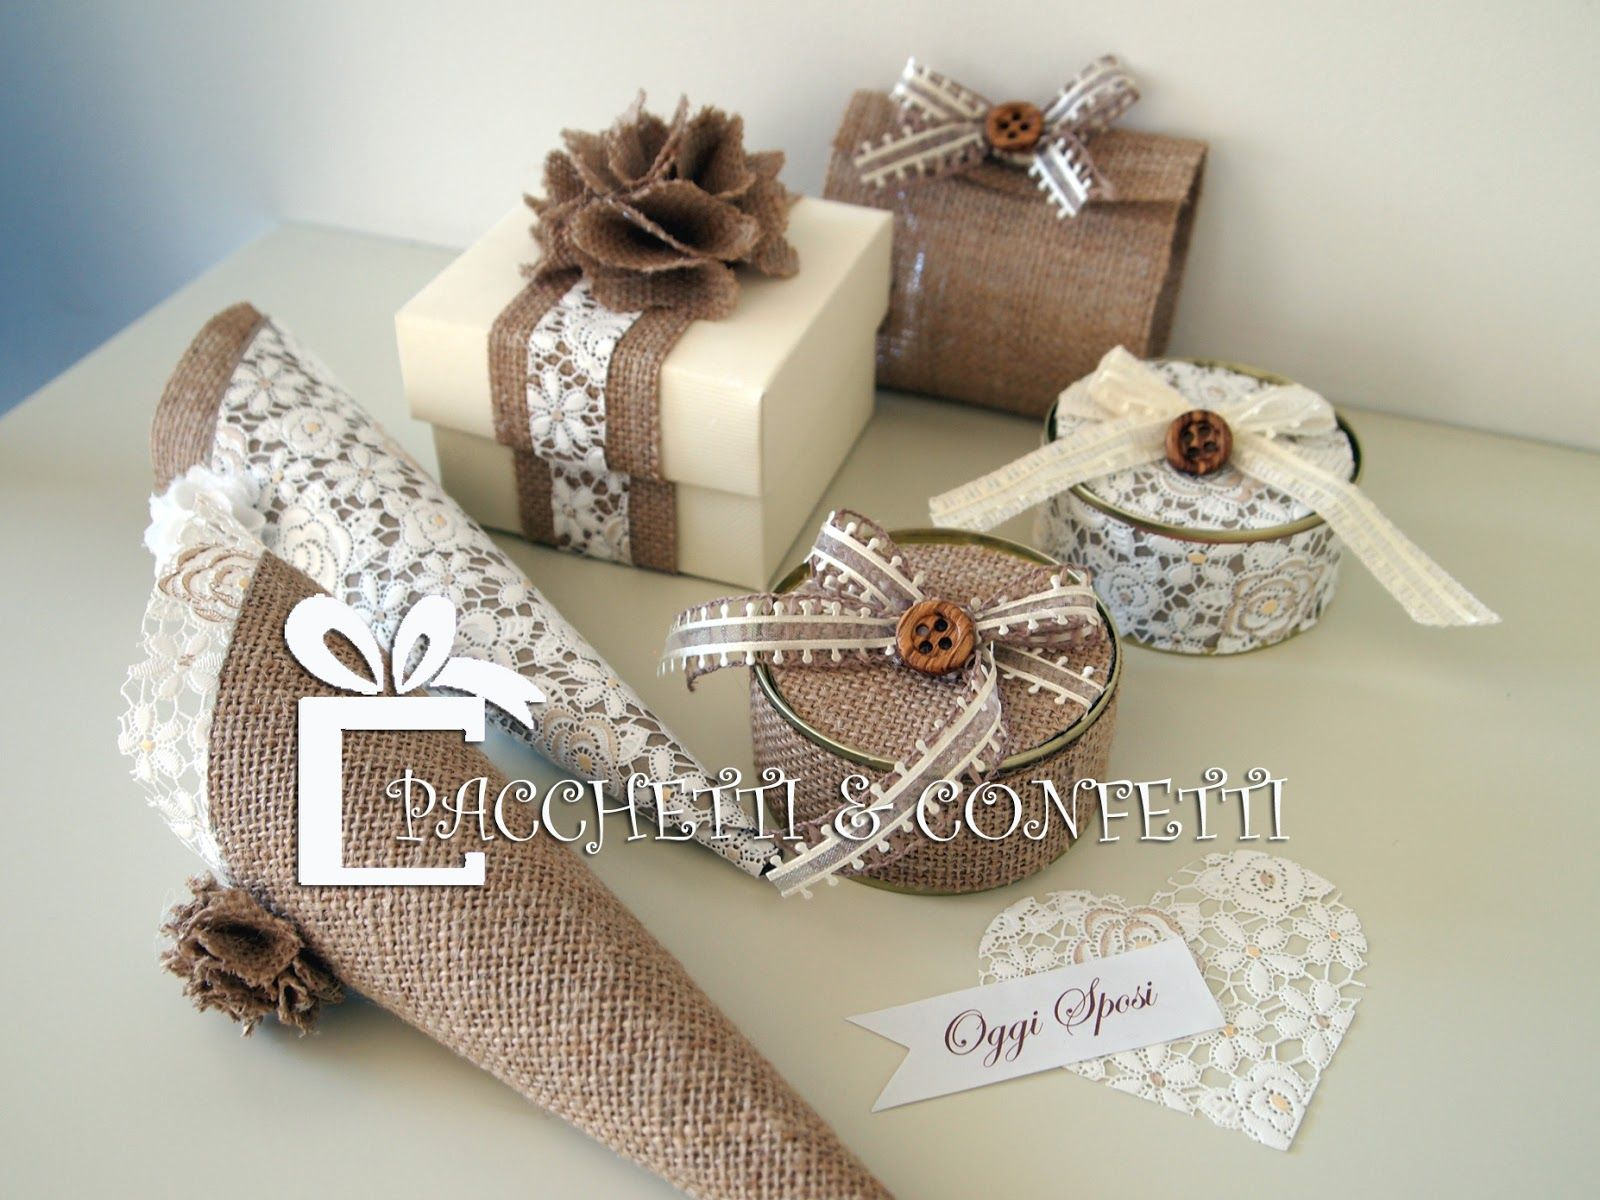 Pacchetti E Confetti Favors Pinterest Gifts Favors And